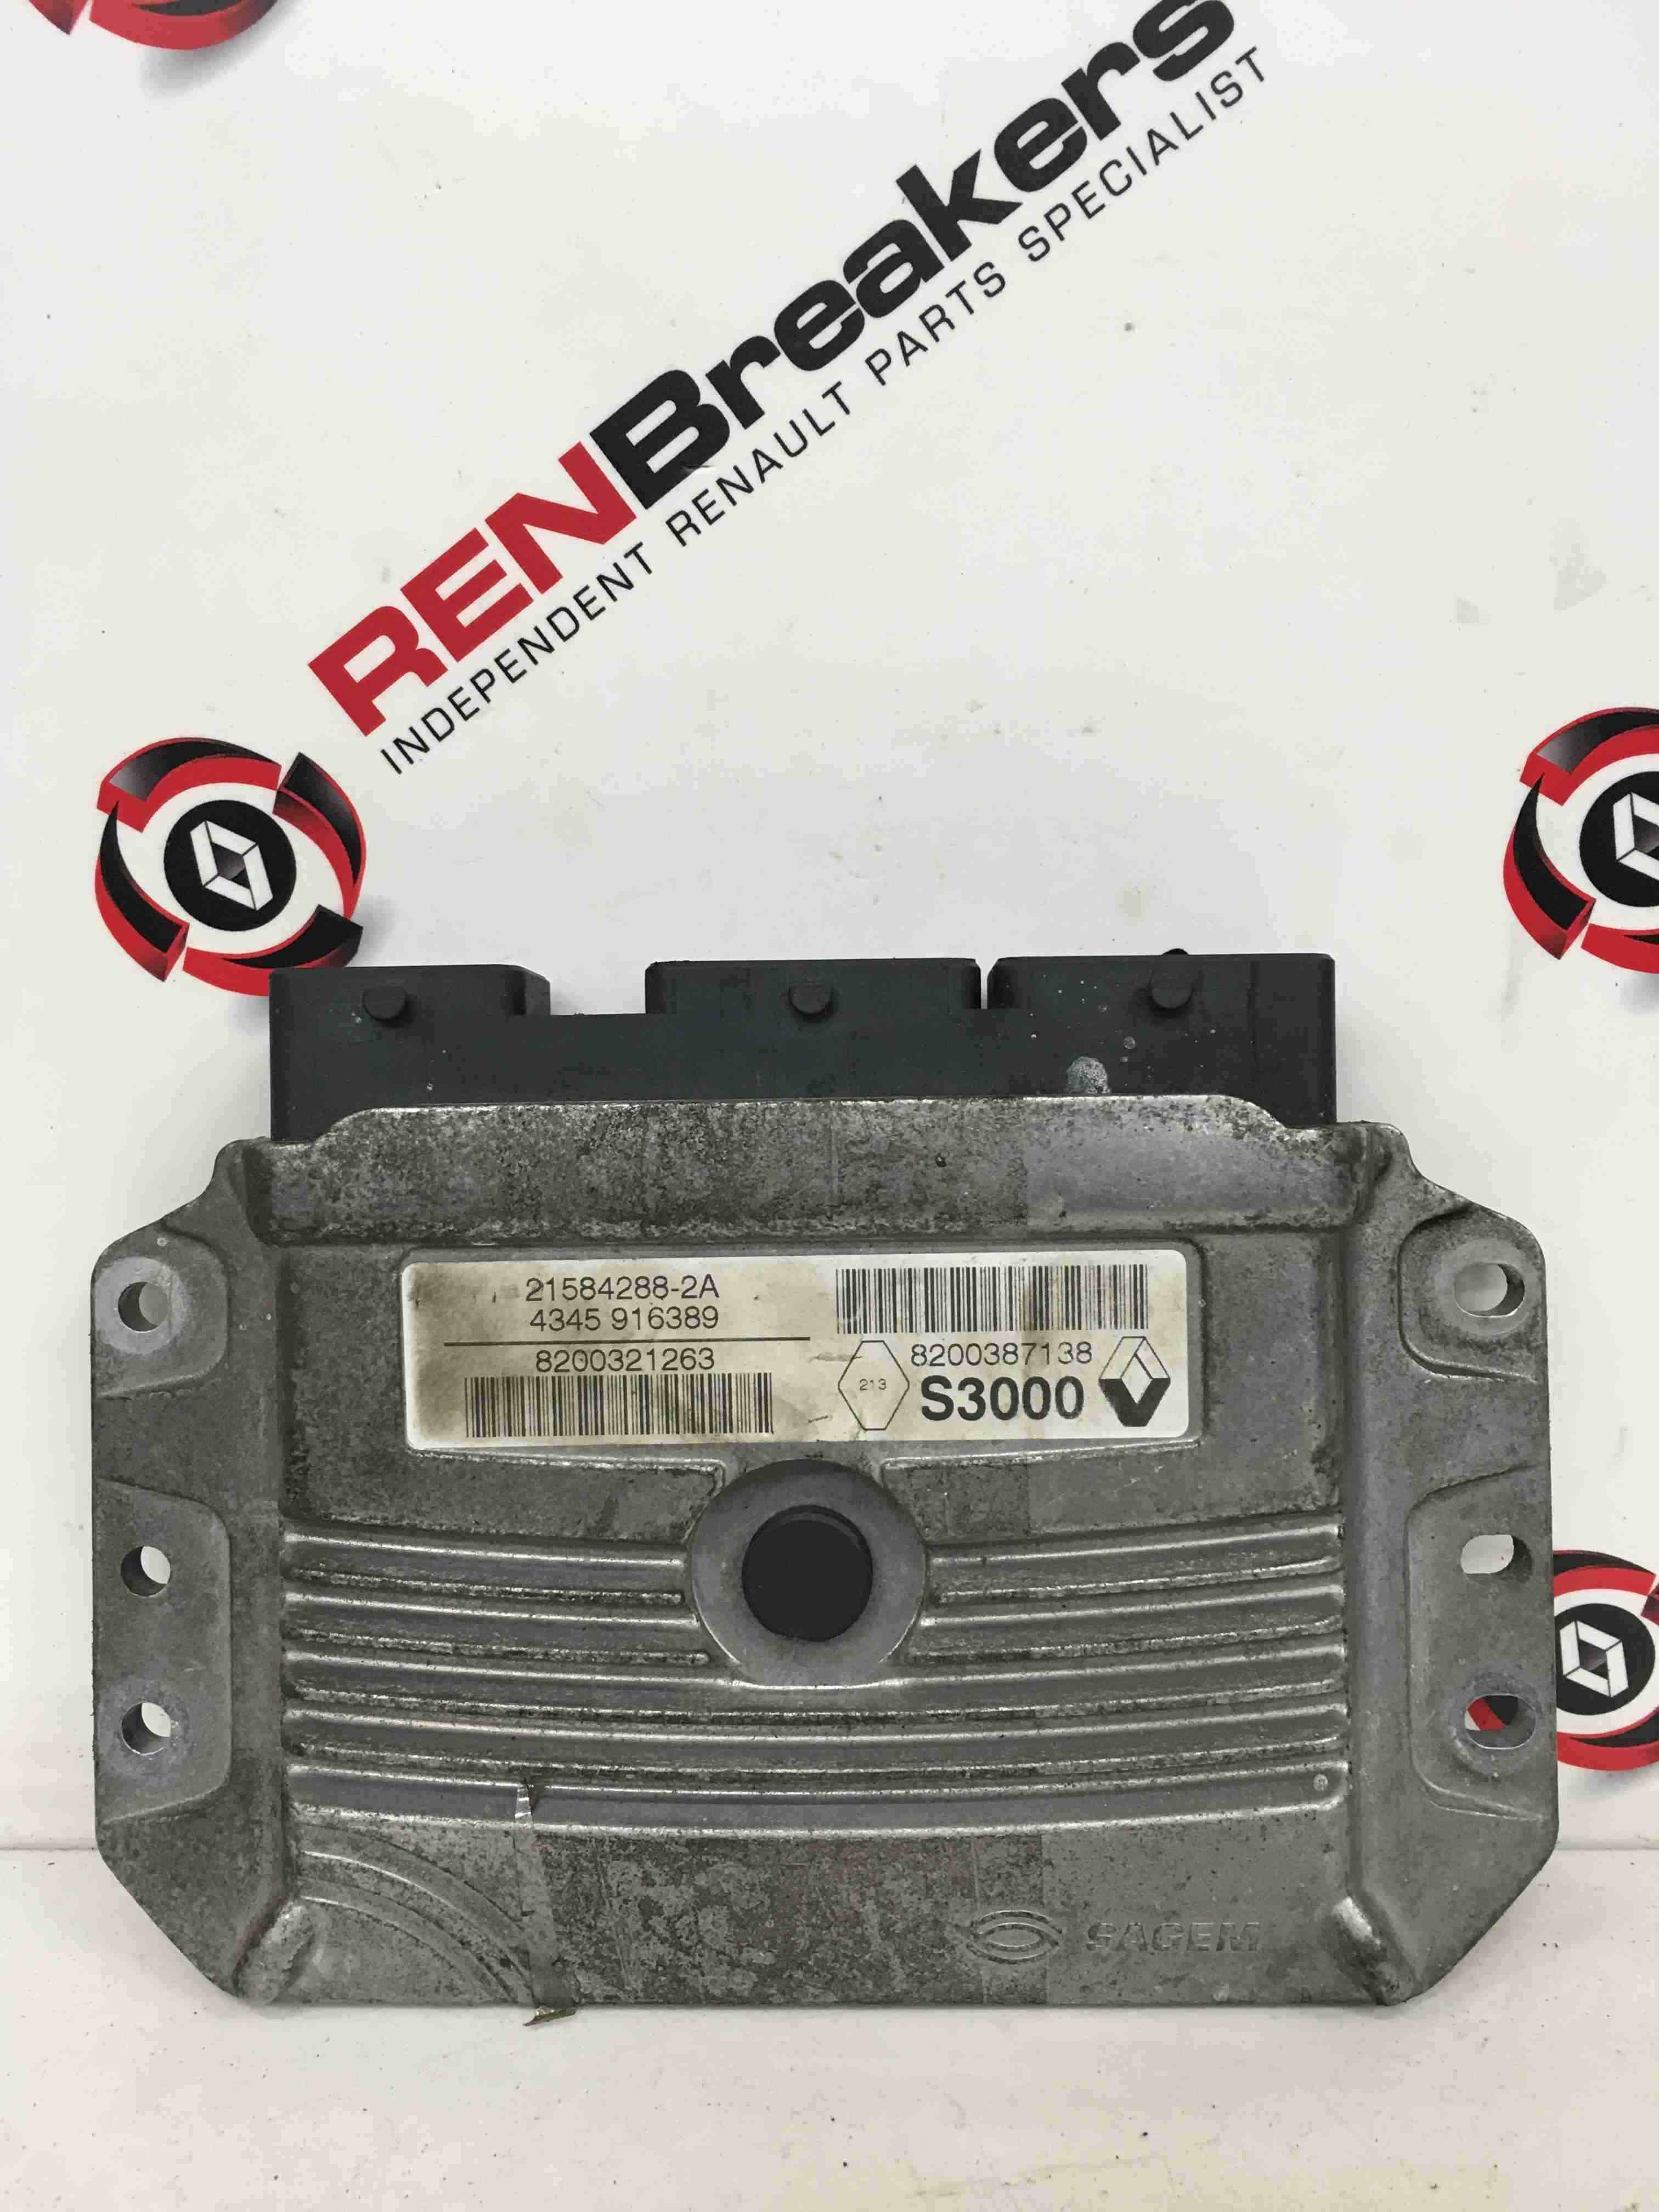 Renault Scenic 2003-2009 2.0 16v Automatic Gearbox ECU Computer 8200321263